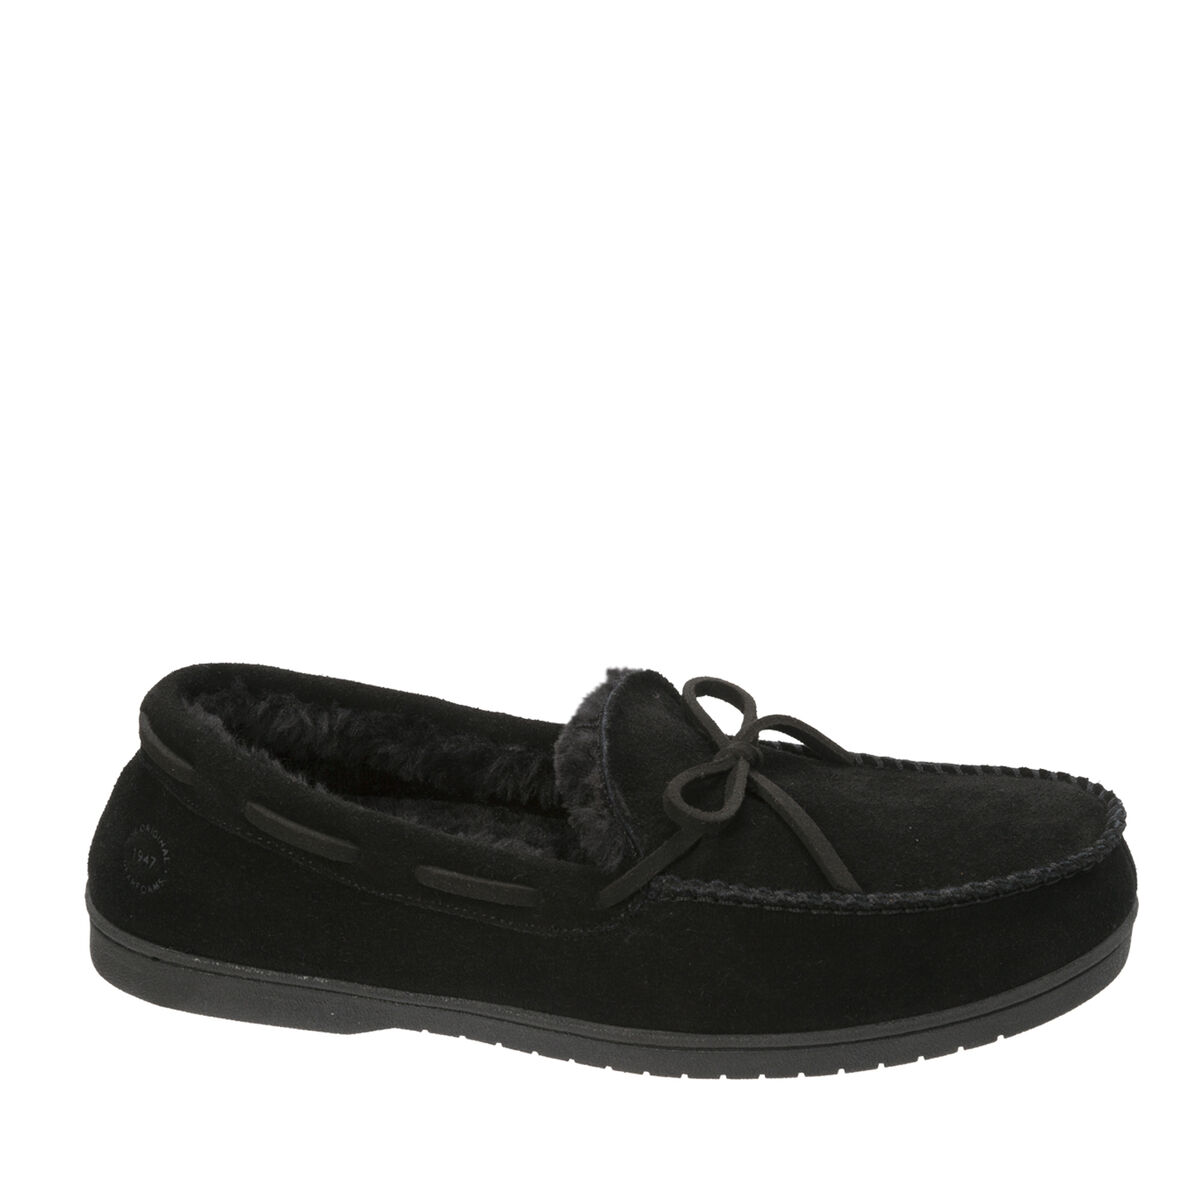 Men's Genuine Suede Moccasin